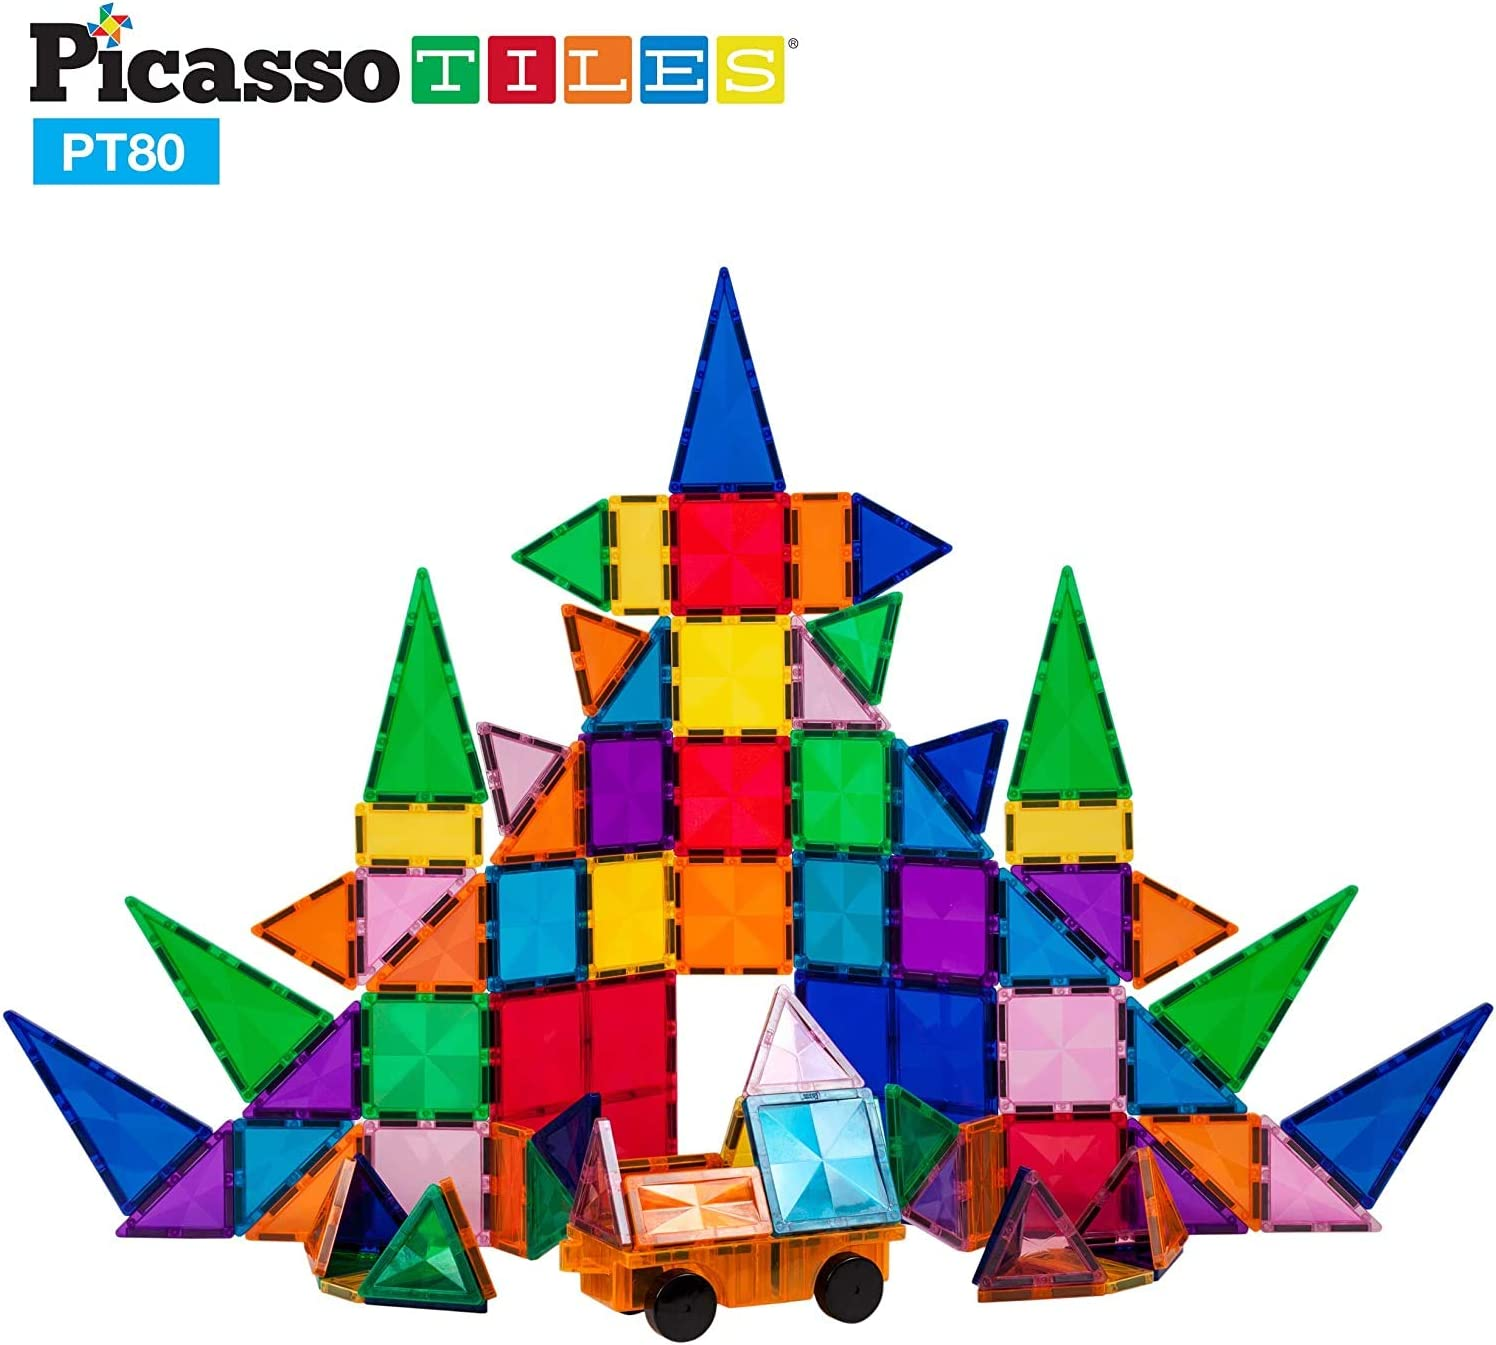 PicassoTiles 80 Piece Magnetic Building Block Construction Toy Set Diamond Magnet Tile Blocks with Car Truck STEM Learning Kit Early Education Builder Playset Toys for Children Toddler Boy Girl Age 3+